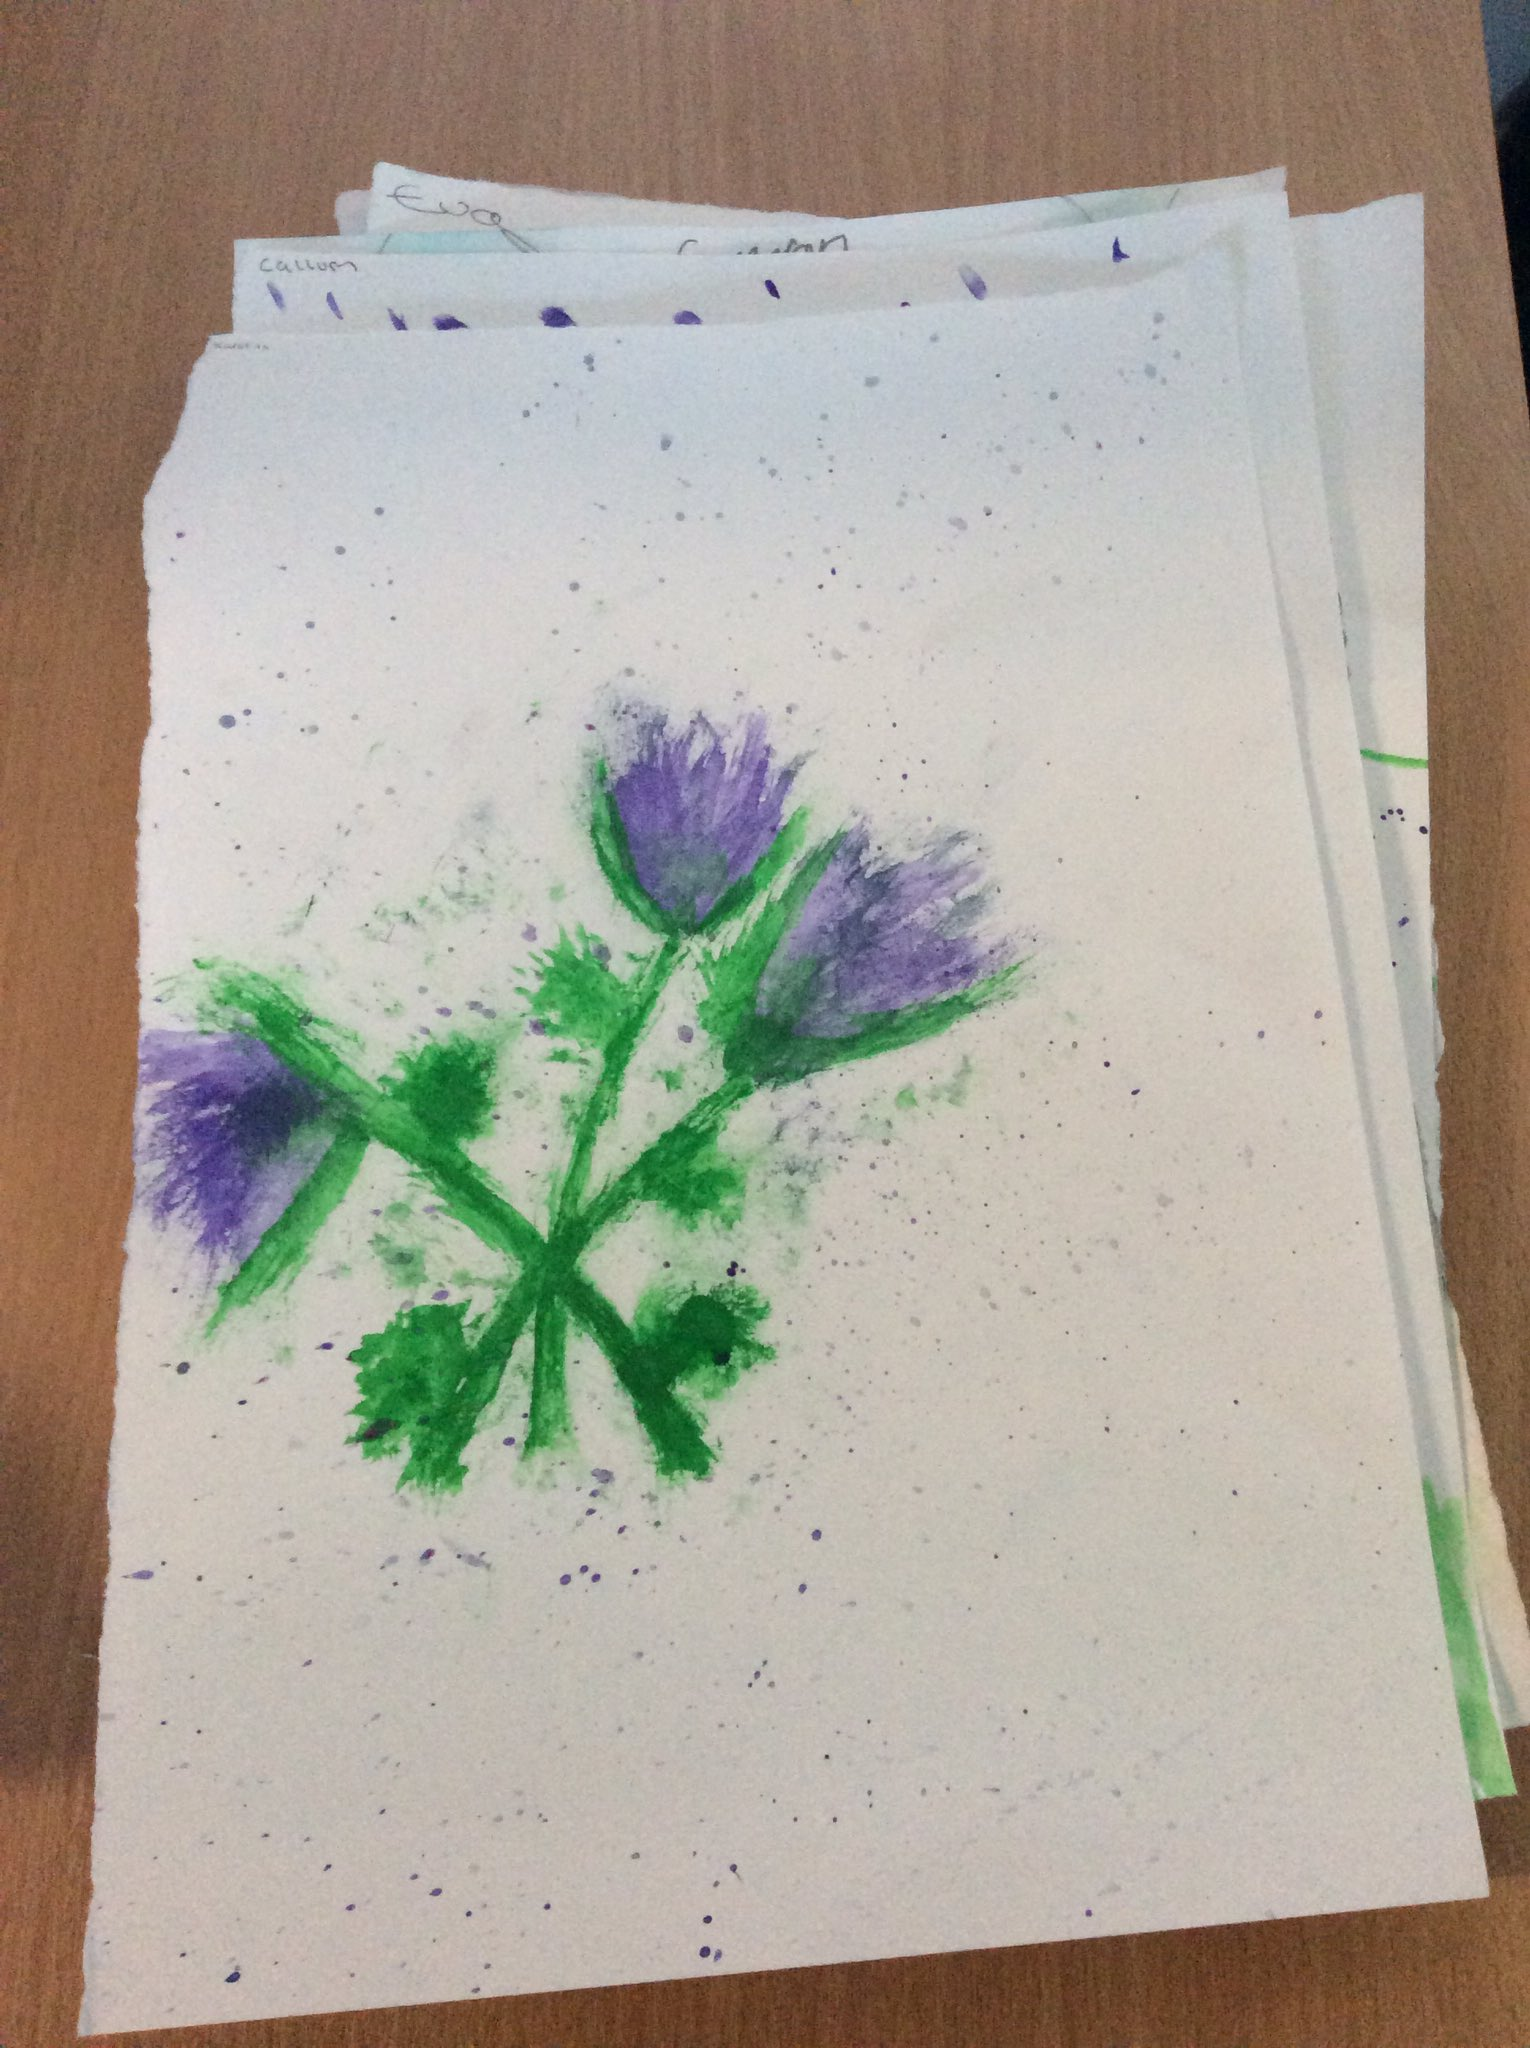 More of P7s thistles today #StAndrewsDay2017 https://t.co/HYlBtduZGb